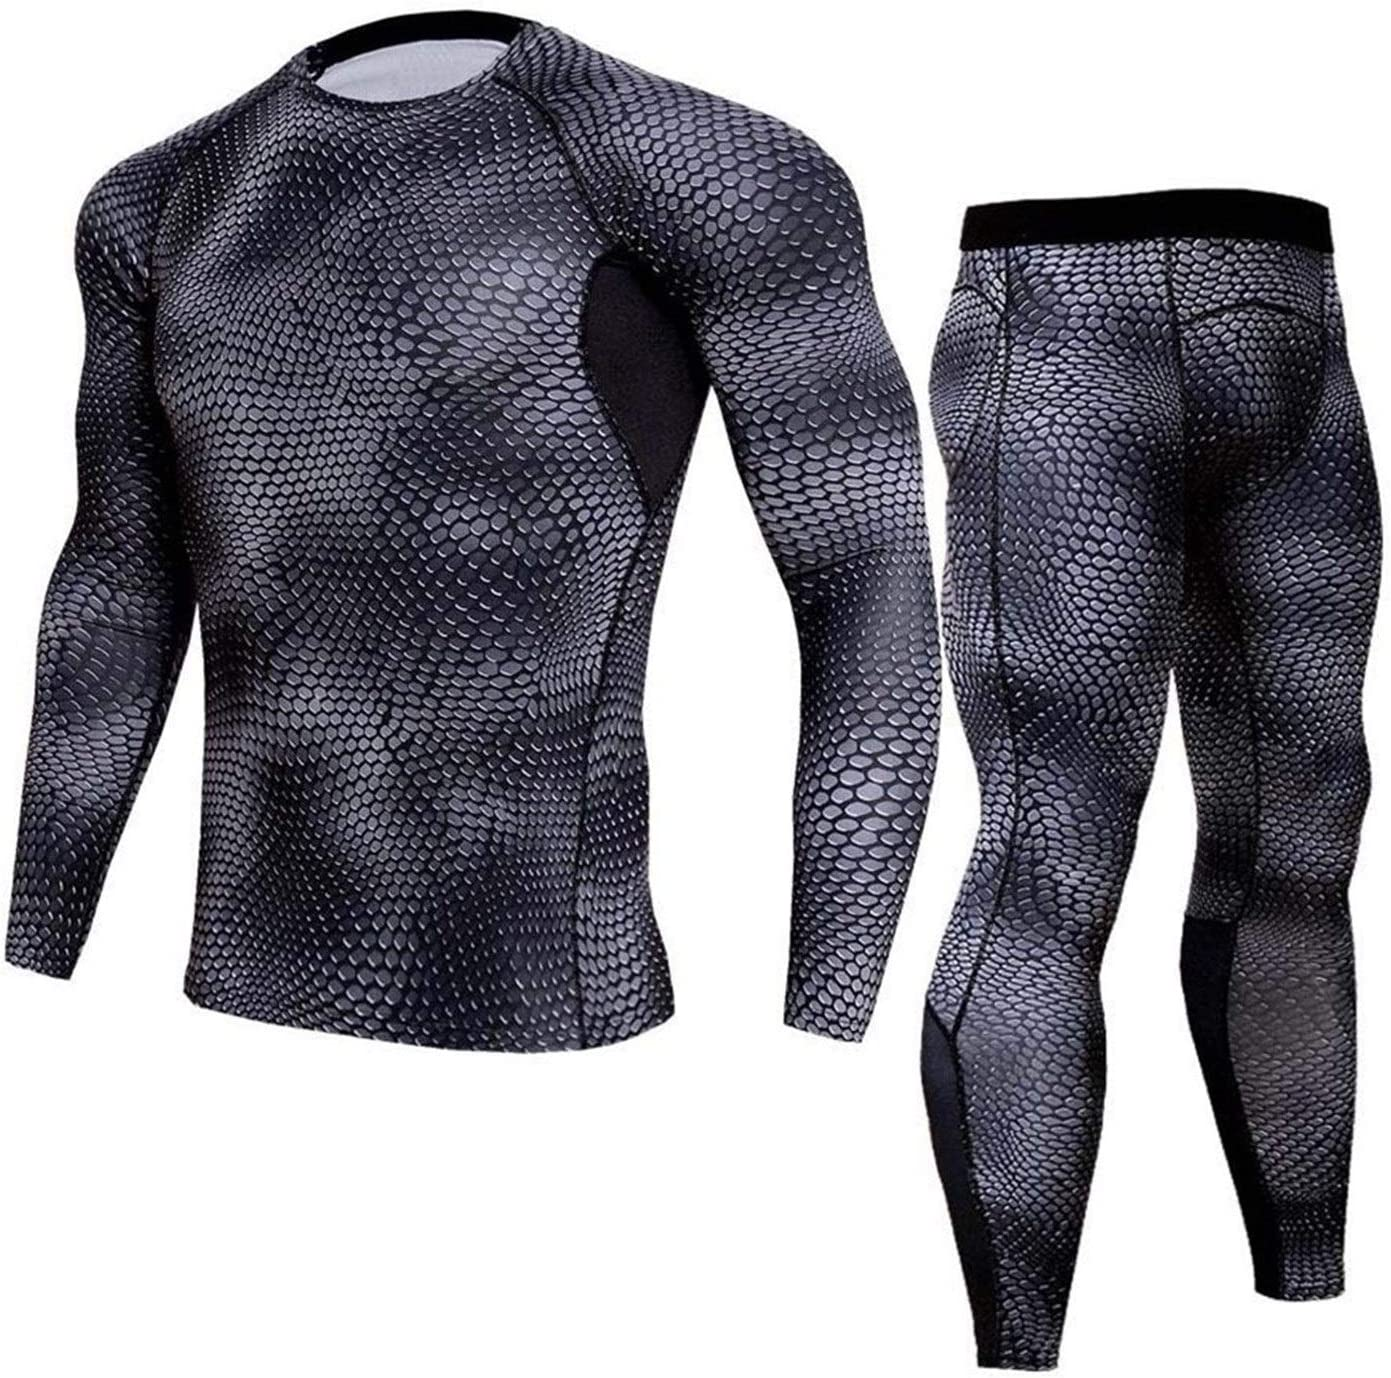 QWERBAM Winter Thermal Underwear Men Underwear Sets Compression Fleece Sweat Quick Drying Thermo Underwear Men Clothing (Color : 1, Size : Small)